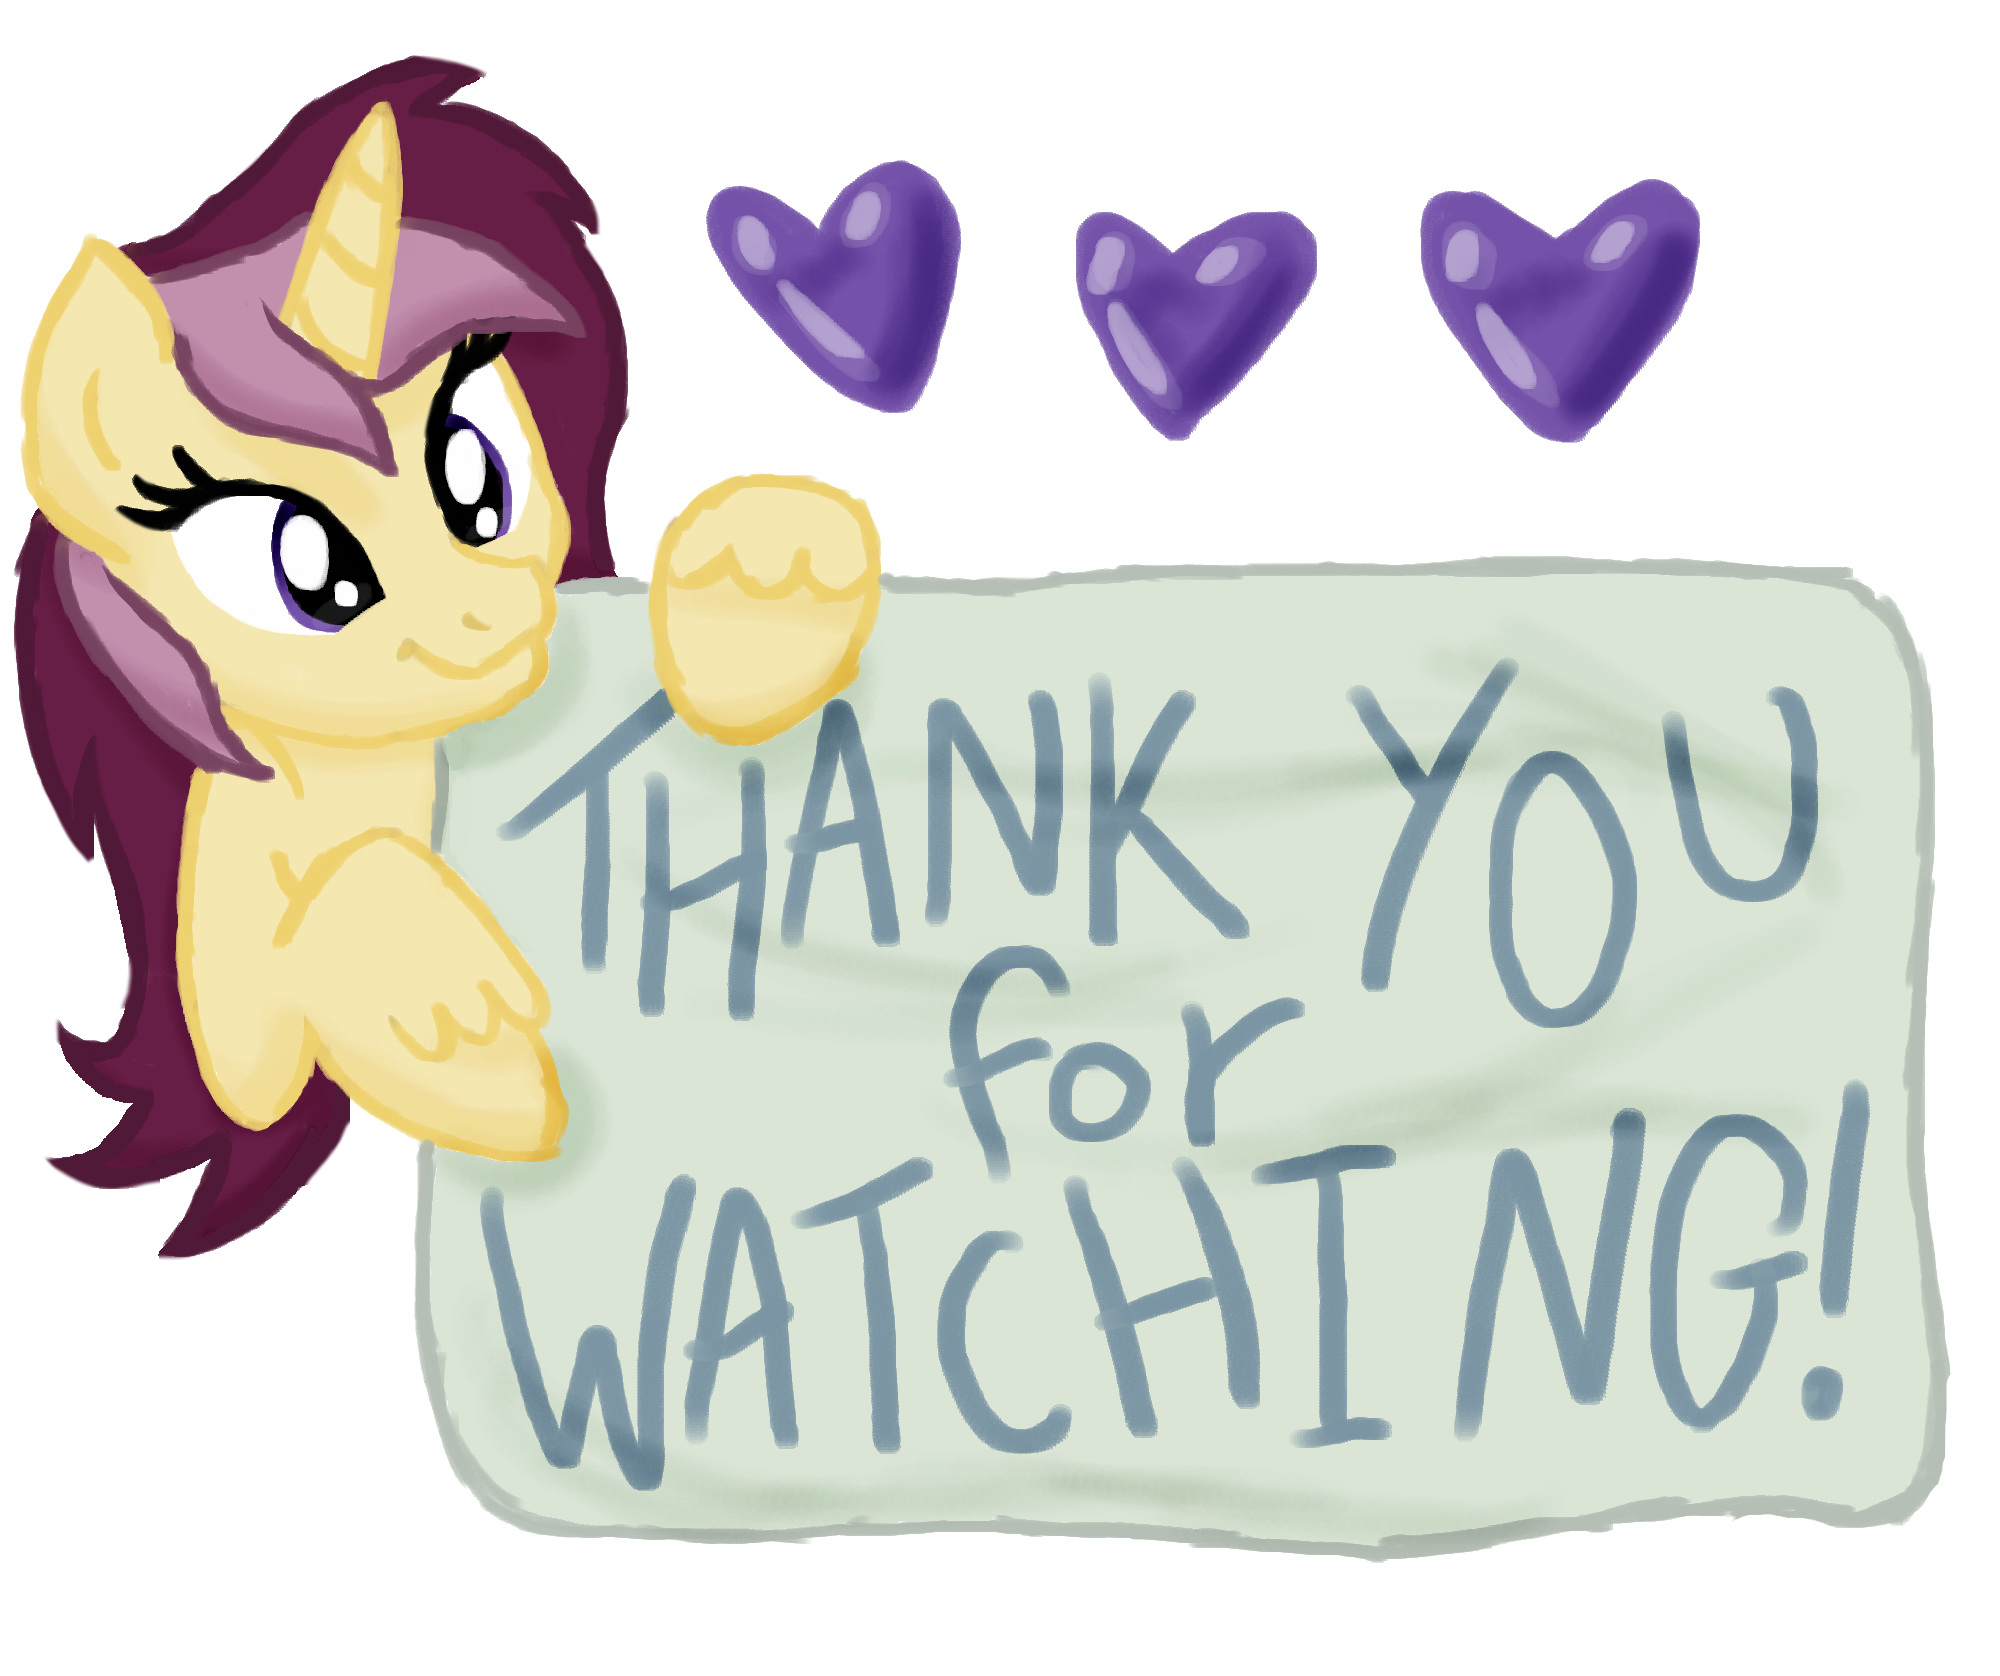 Thank You For Watching Me by SJArt117 on DeviantArt